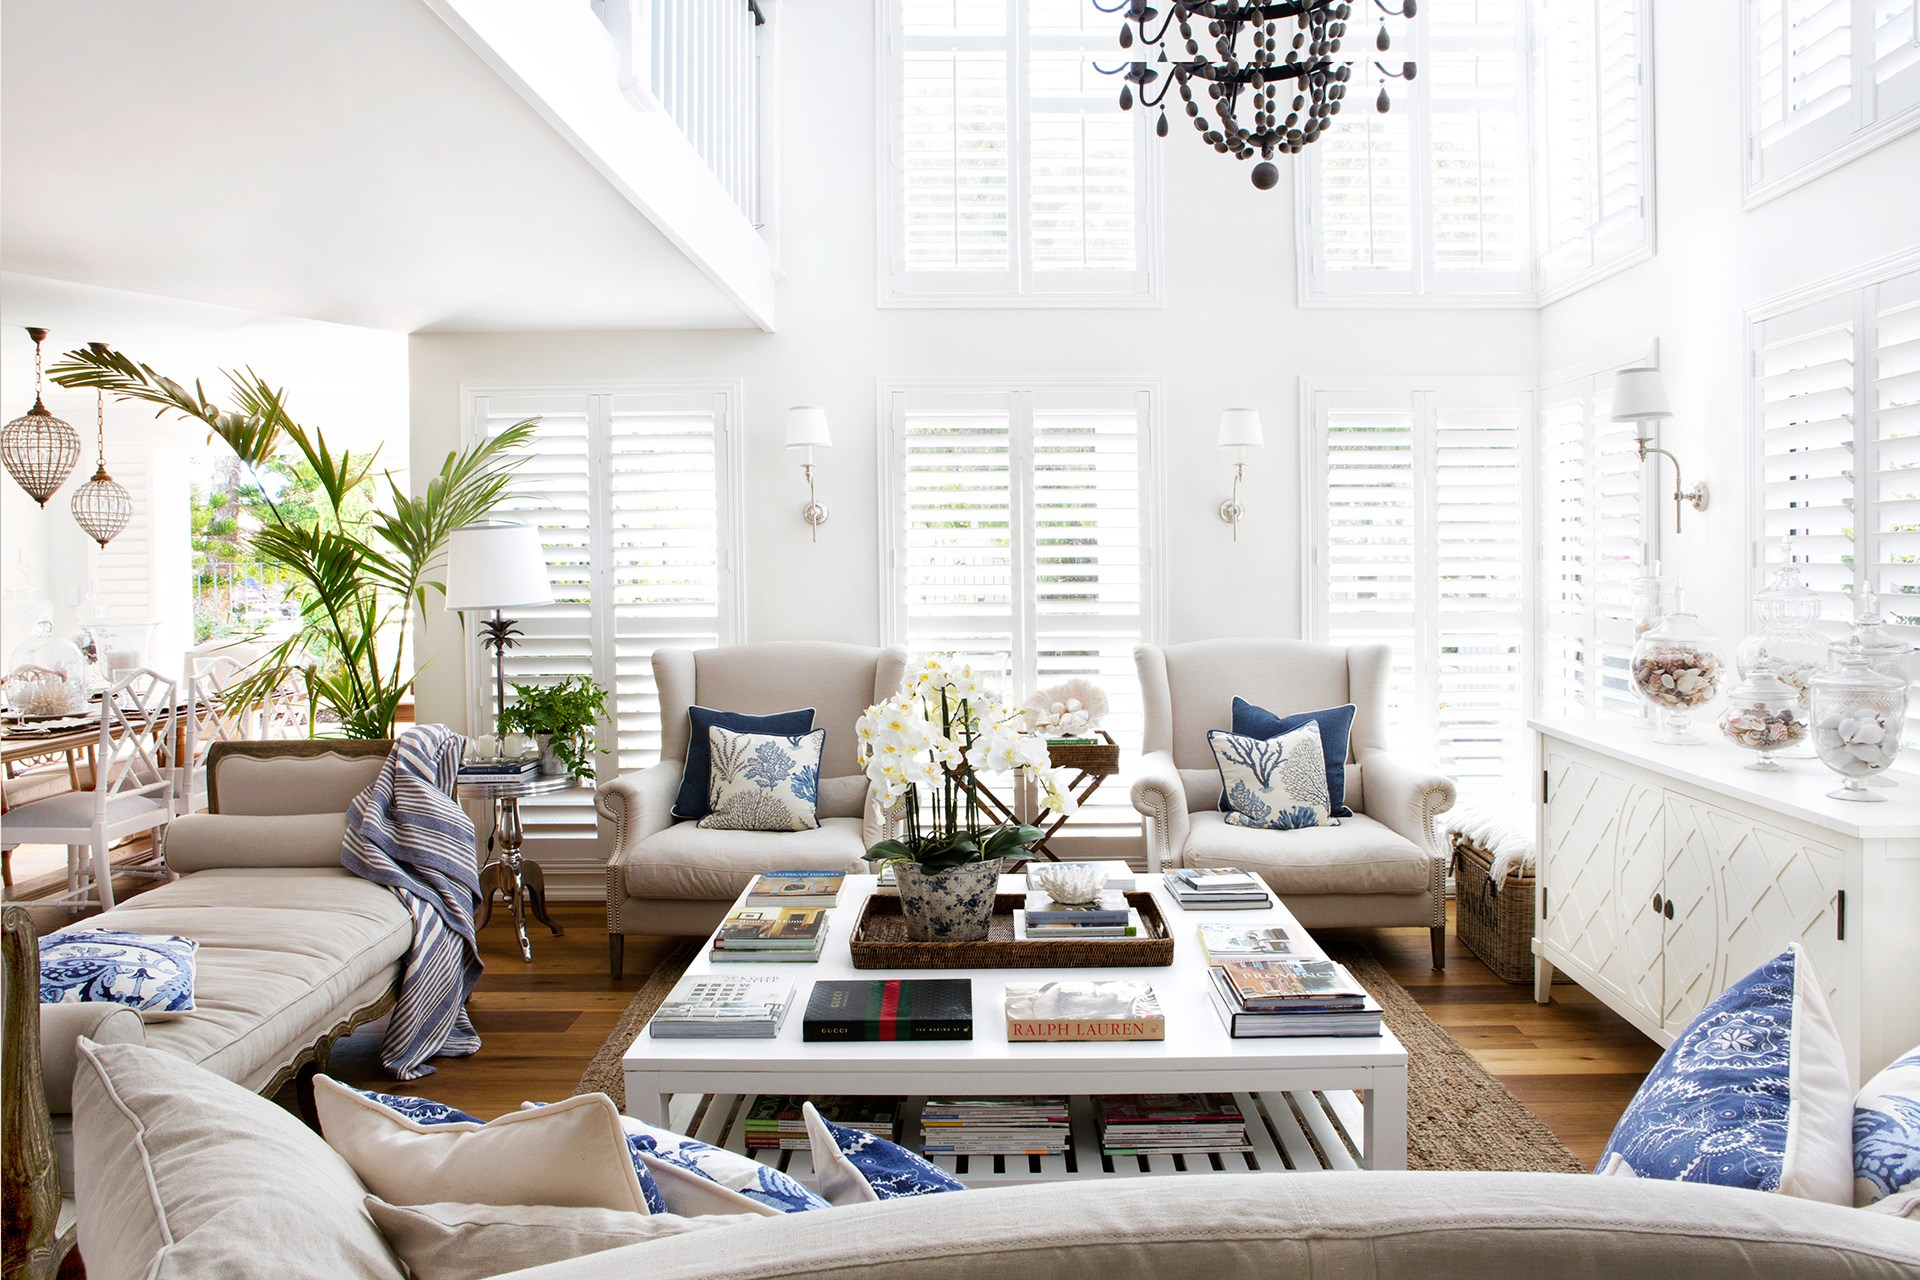 """This [Hamptons-style home](http://www.homestolove.com.au/gallery-hamptons-style-comes-to-life-in-perth-2328